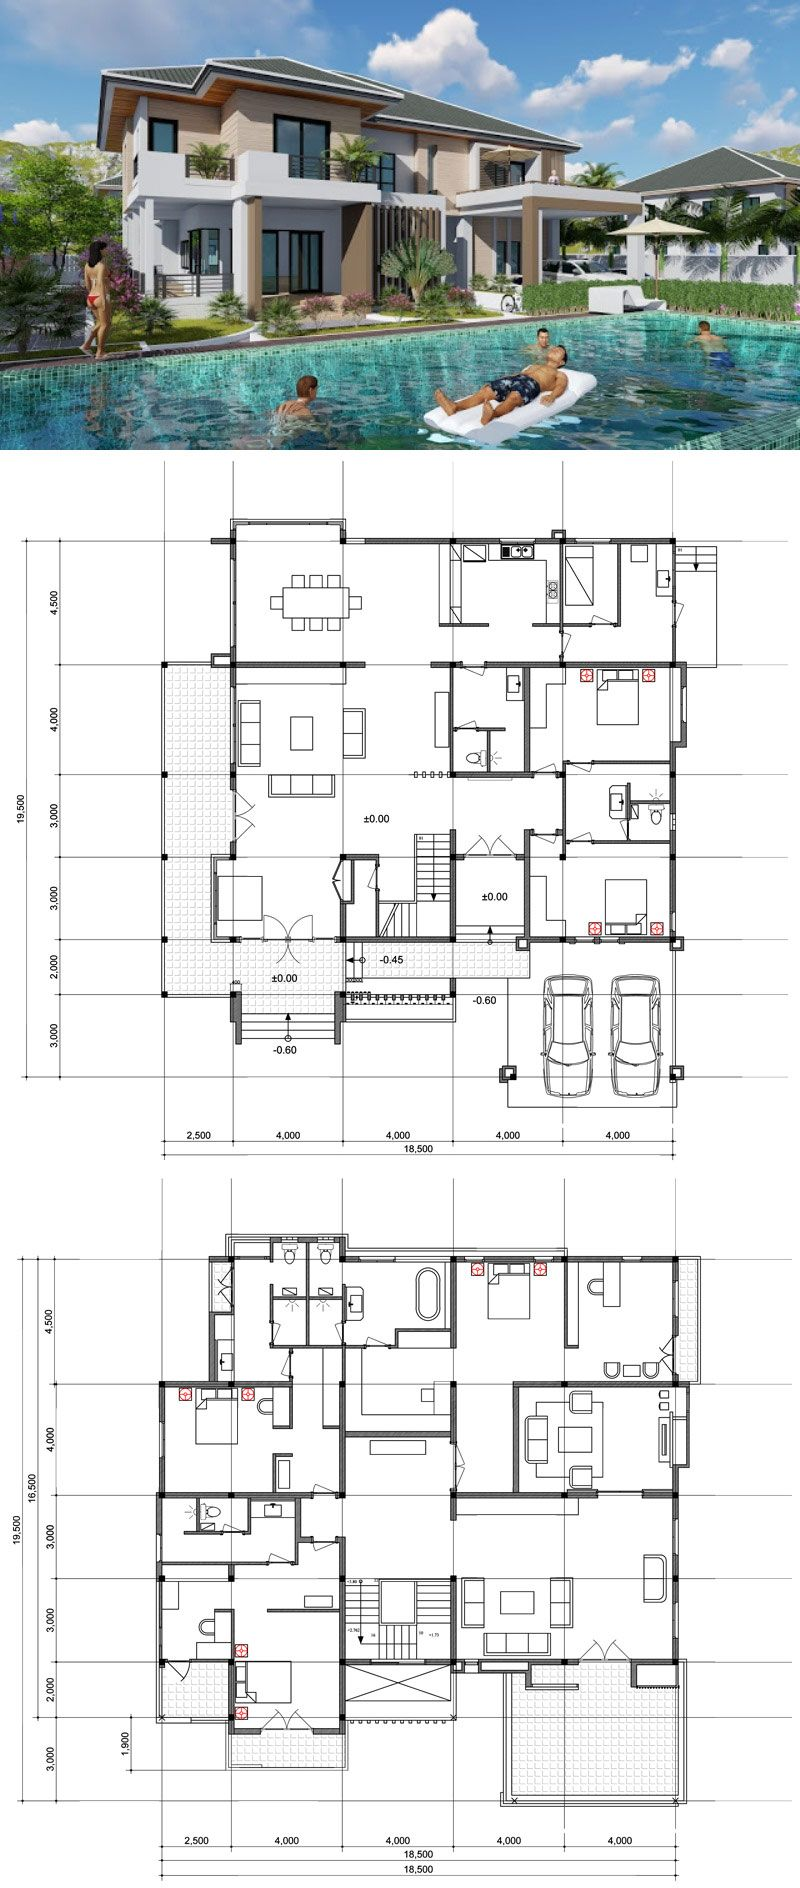 Luxurious 6 Bedroom Home With Five Bathrooms And Swimming Pool Provision Pool House Plans Luxury House Plans Luxury House Designs